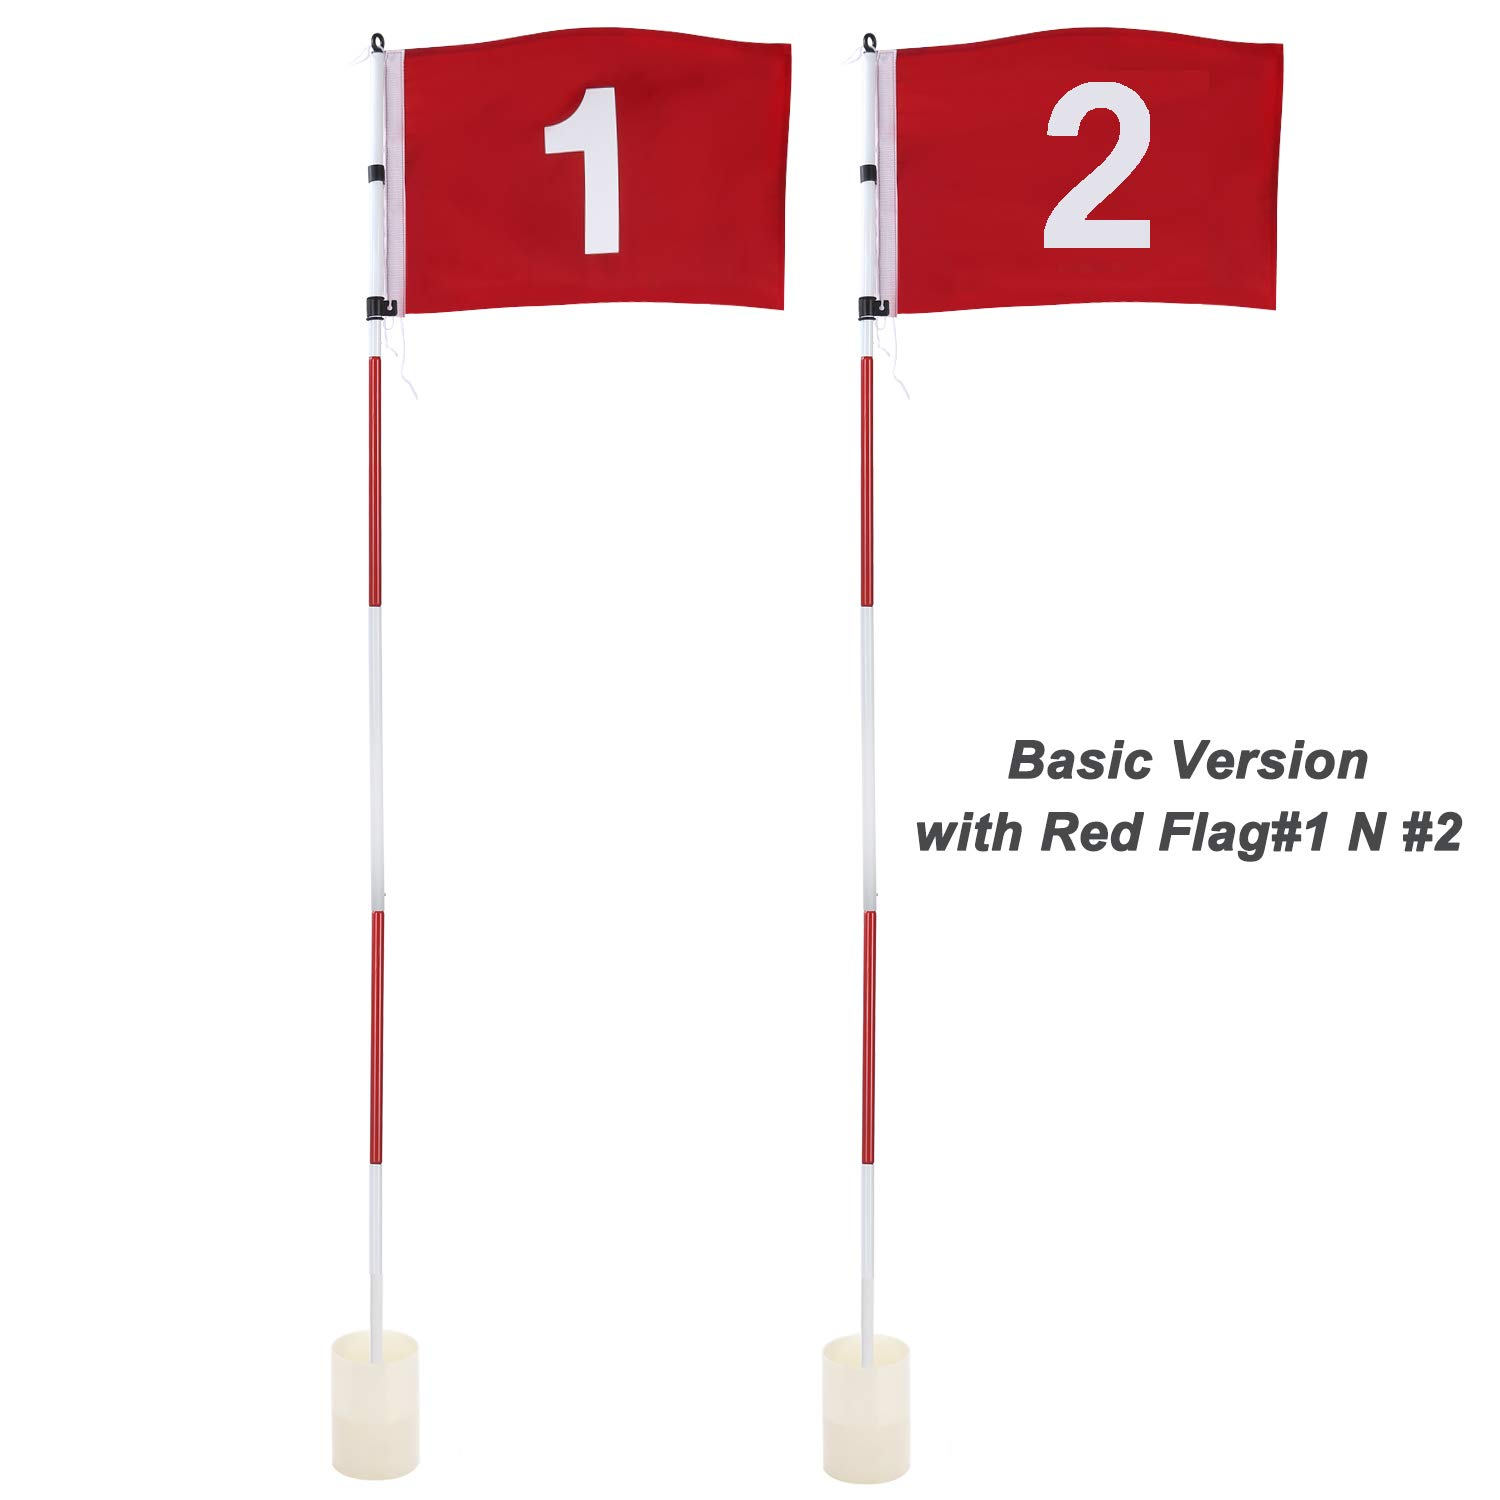 KINGTOP Golf Flag Stick, Practice Putting Green Flagstick Hole Cup Set, Golf Pin Flags for Driving Range/Backyard, Indoor/Outdoor, 5-Section Design, Solid Red Flag Numbered #1, 2, Both 71-inch, 2-Set by KINGTOP